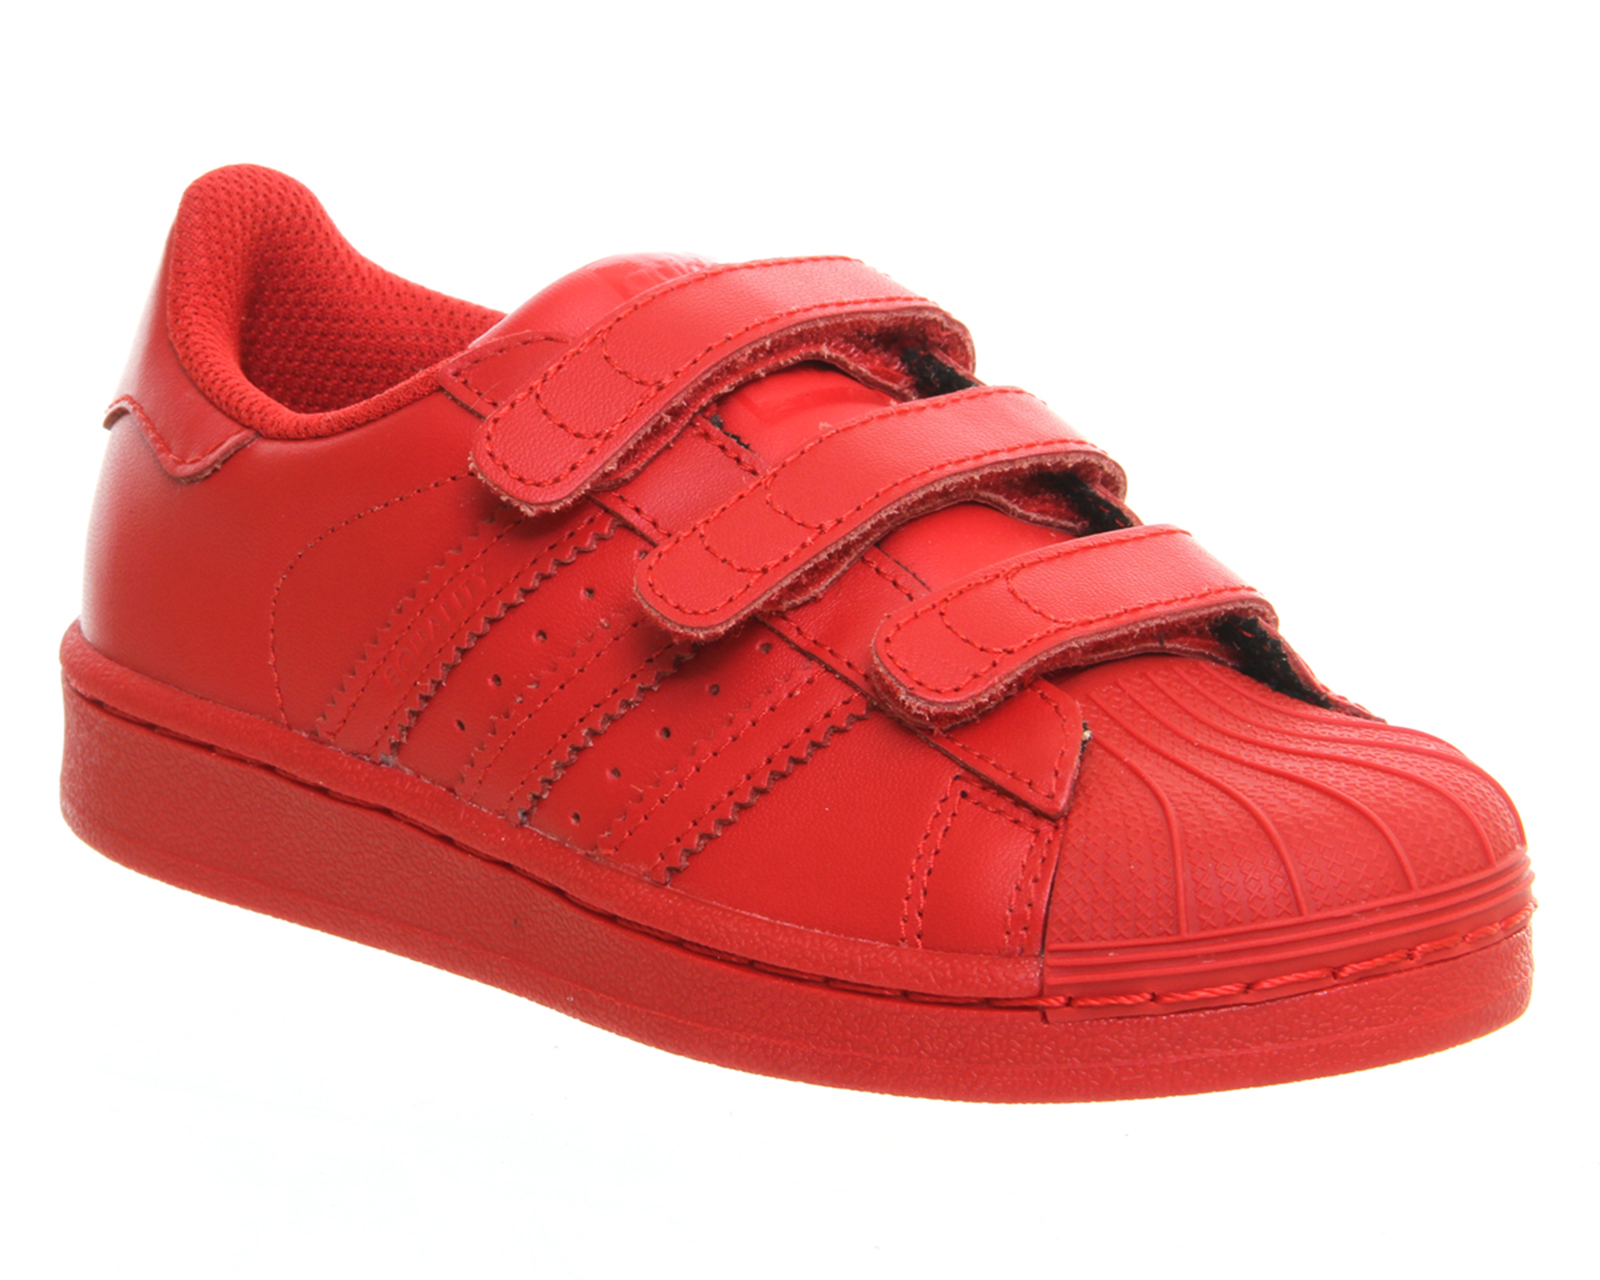 adidas superstar red kids